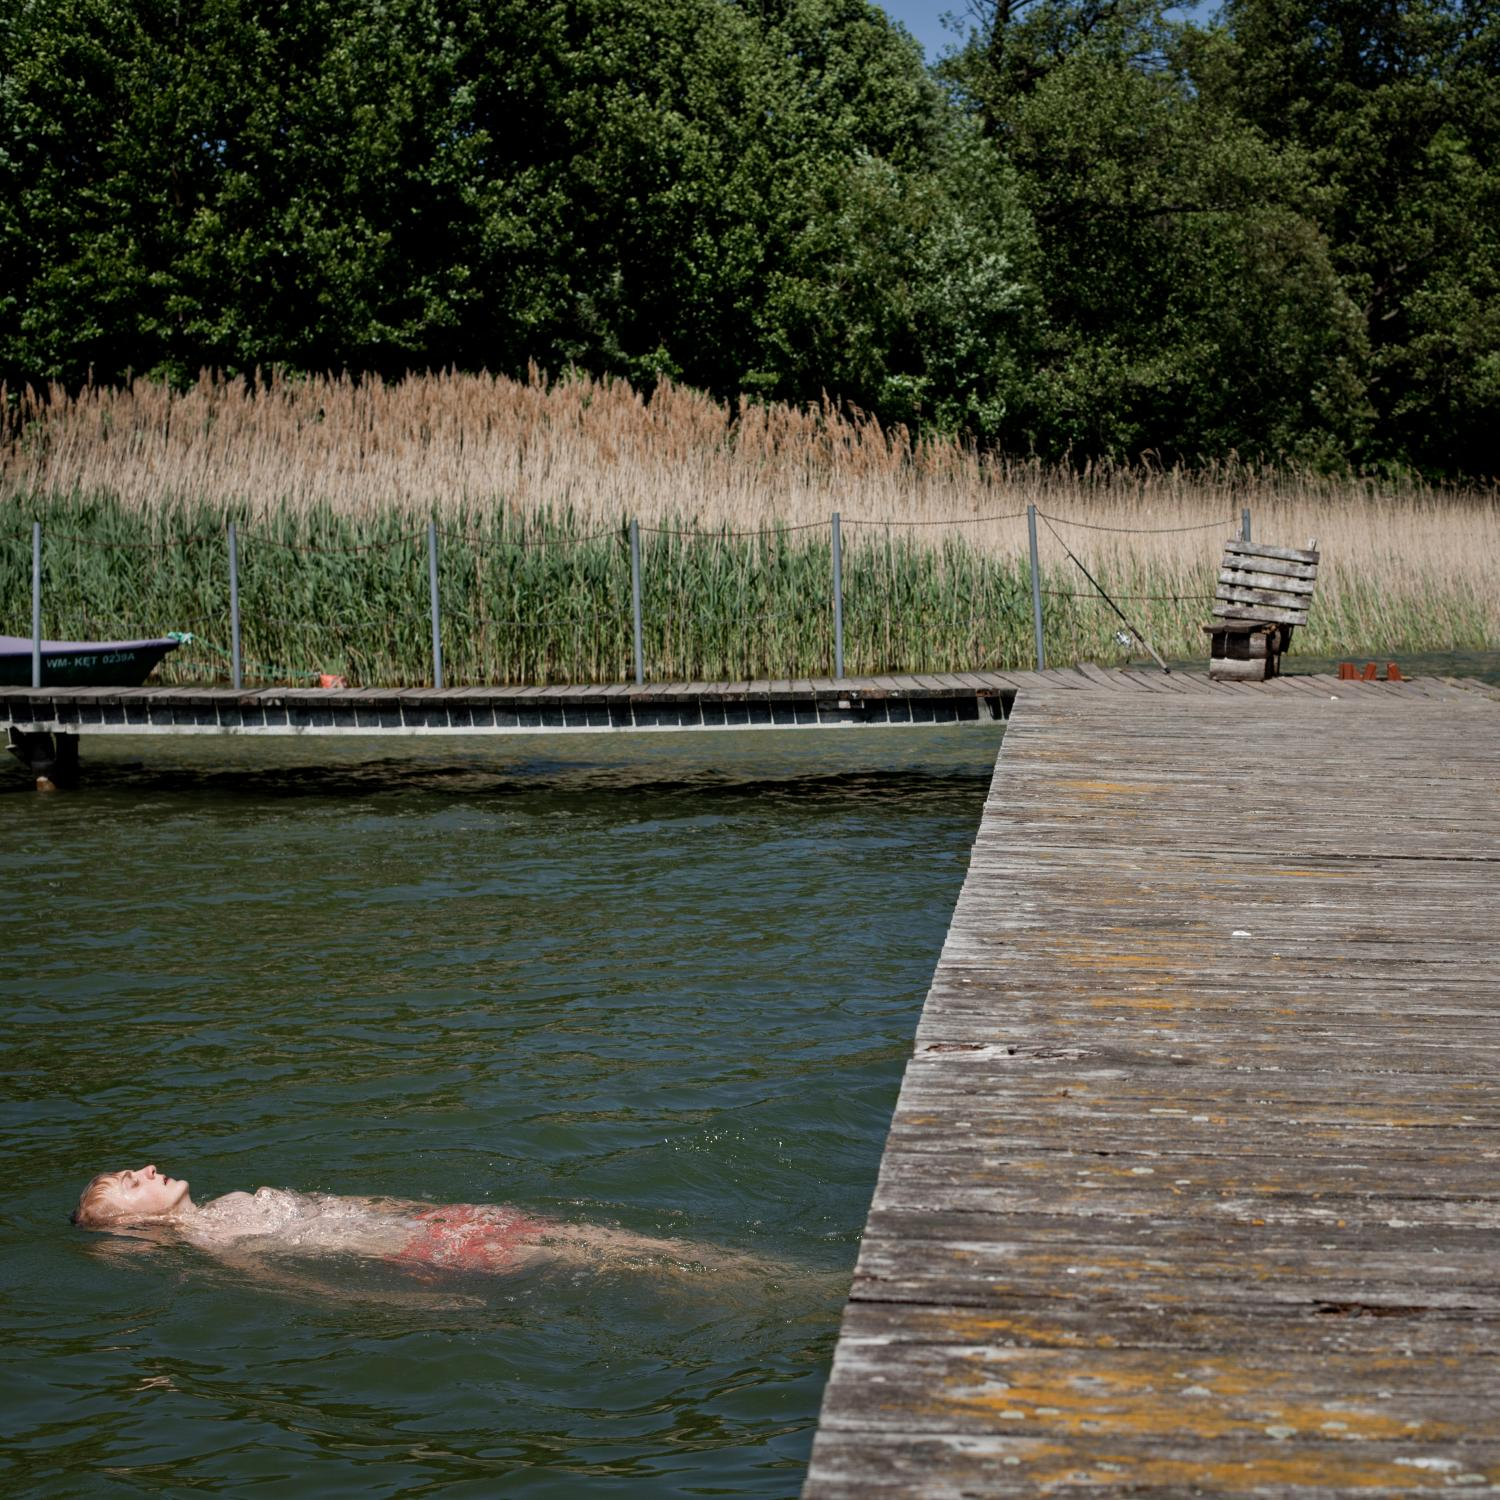 STAWIGUDA, POLAND, JUNE 5, 2015: Ukrainian refugee Pawel is swimming in a lake at the Archdiocesean Charity Centre Caritas where over 130 refugees from the conflict torn Eastern Ukraine; Donetsk and Lugansk regions found temporary shelter. These people were chosen because they have Polish ancestors and have all been flown to Poland in January this year in a special operation of the Polish government. Most of them have been assigned flats in various Polish towns and claim to have found work too, so are preparing to leave this shelter soon. Fot: Piotr Malecki / Panos Pictures